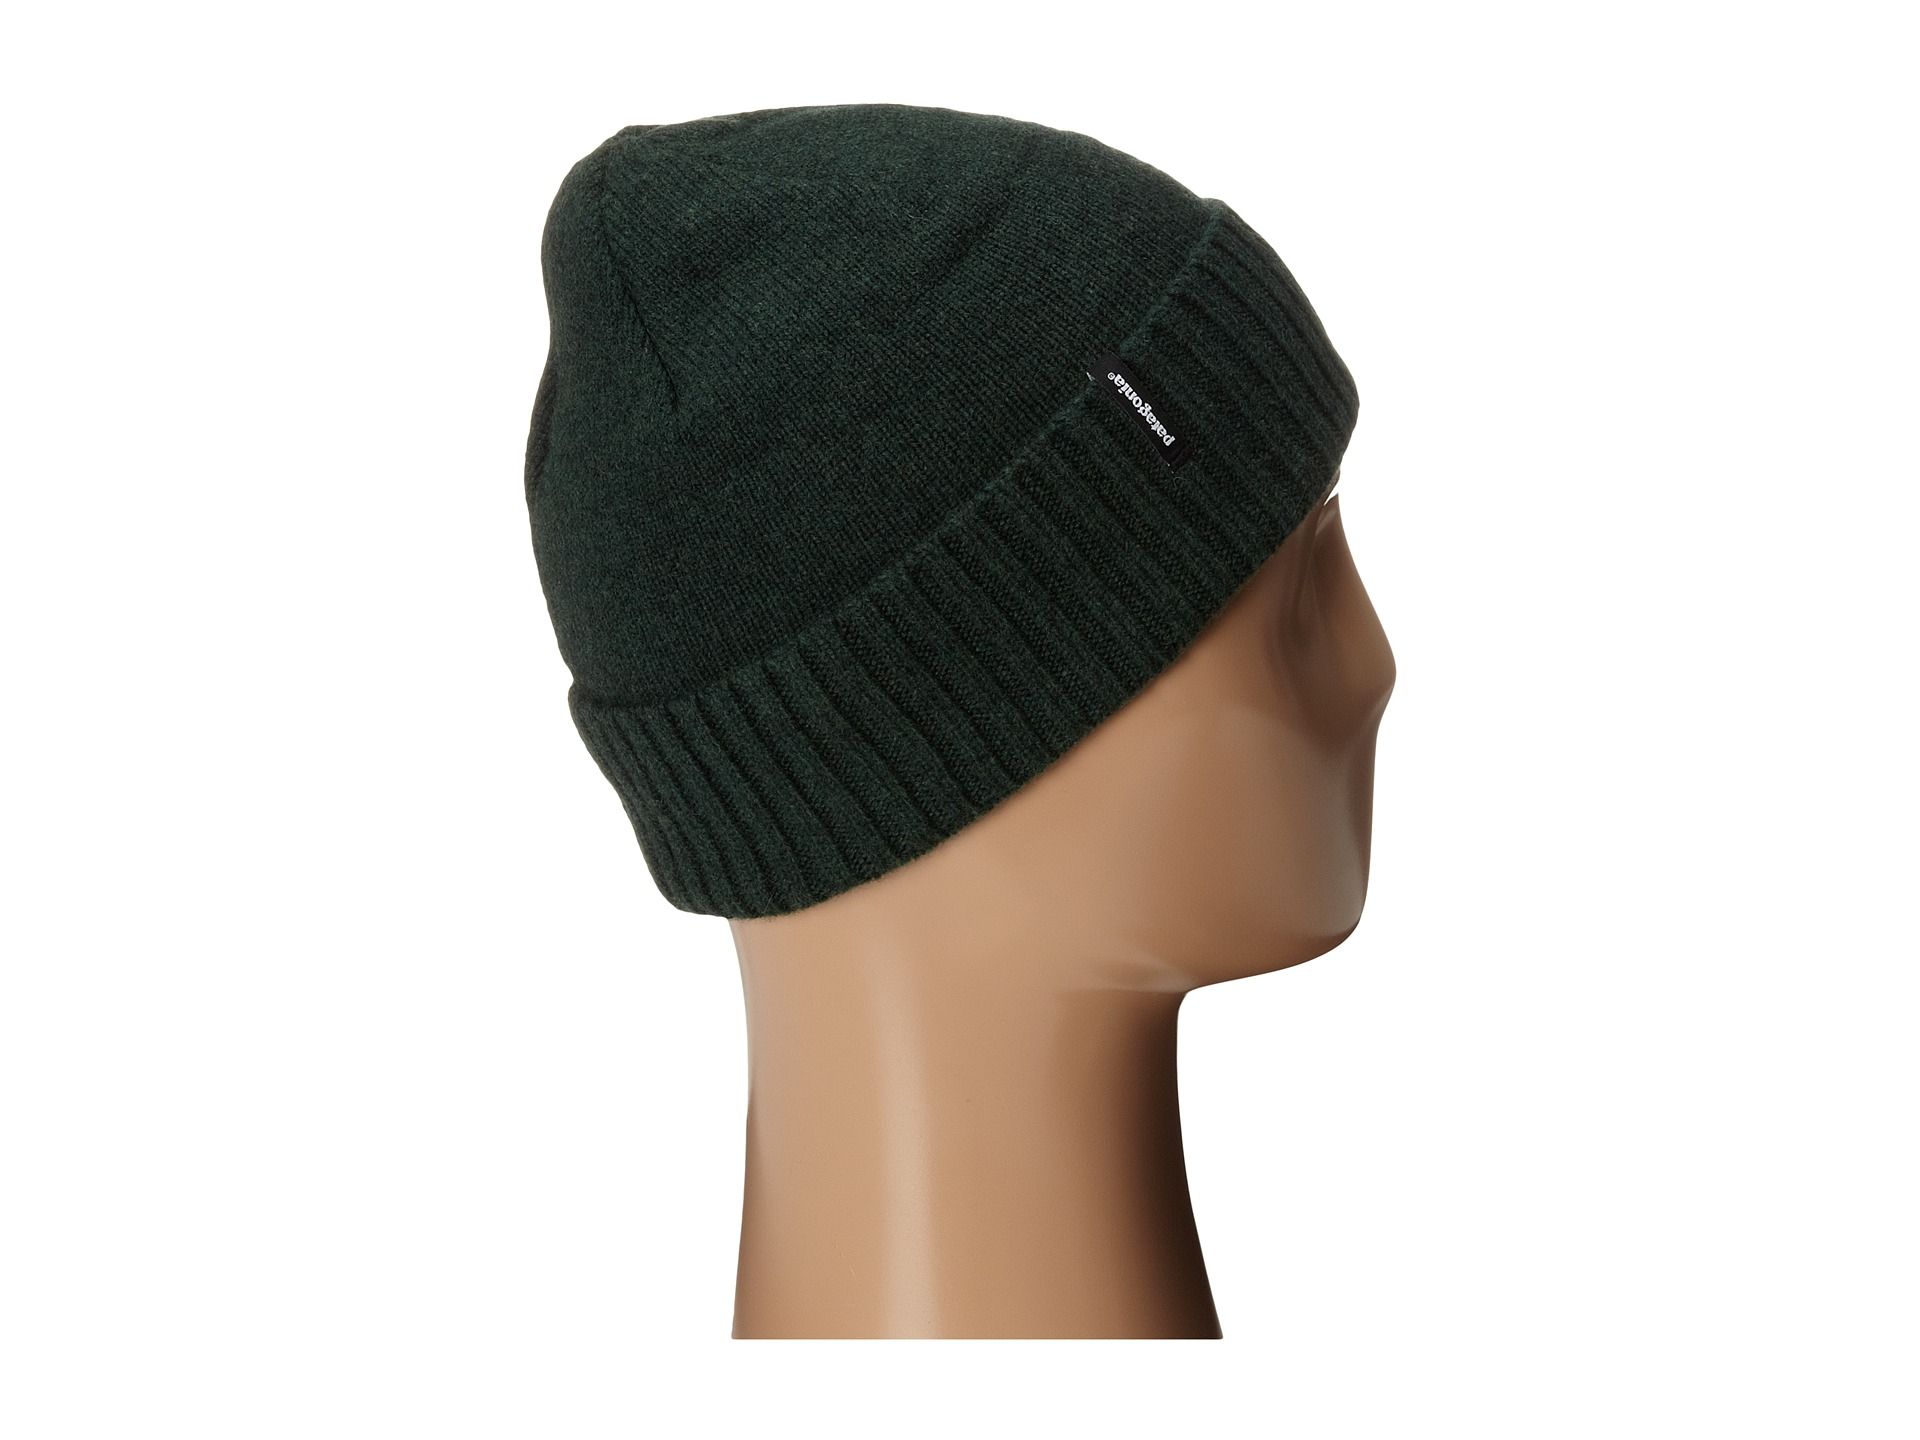 0d6971b7 Patagonia Brodeo Beanie in Green - Lyst